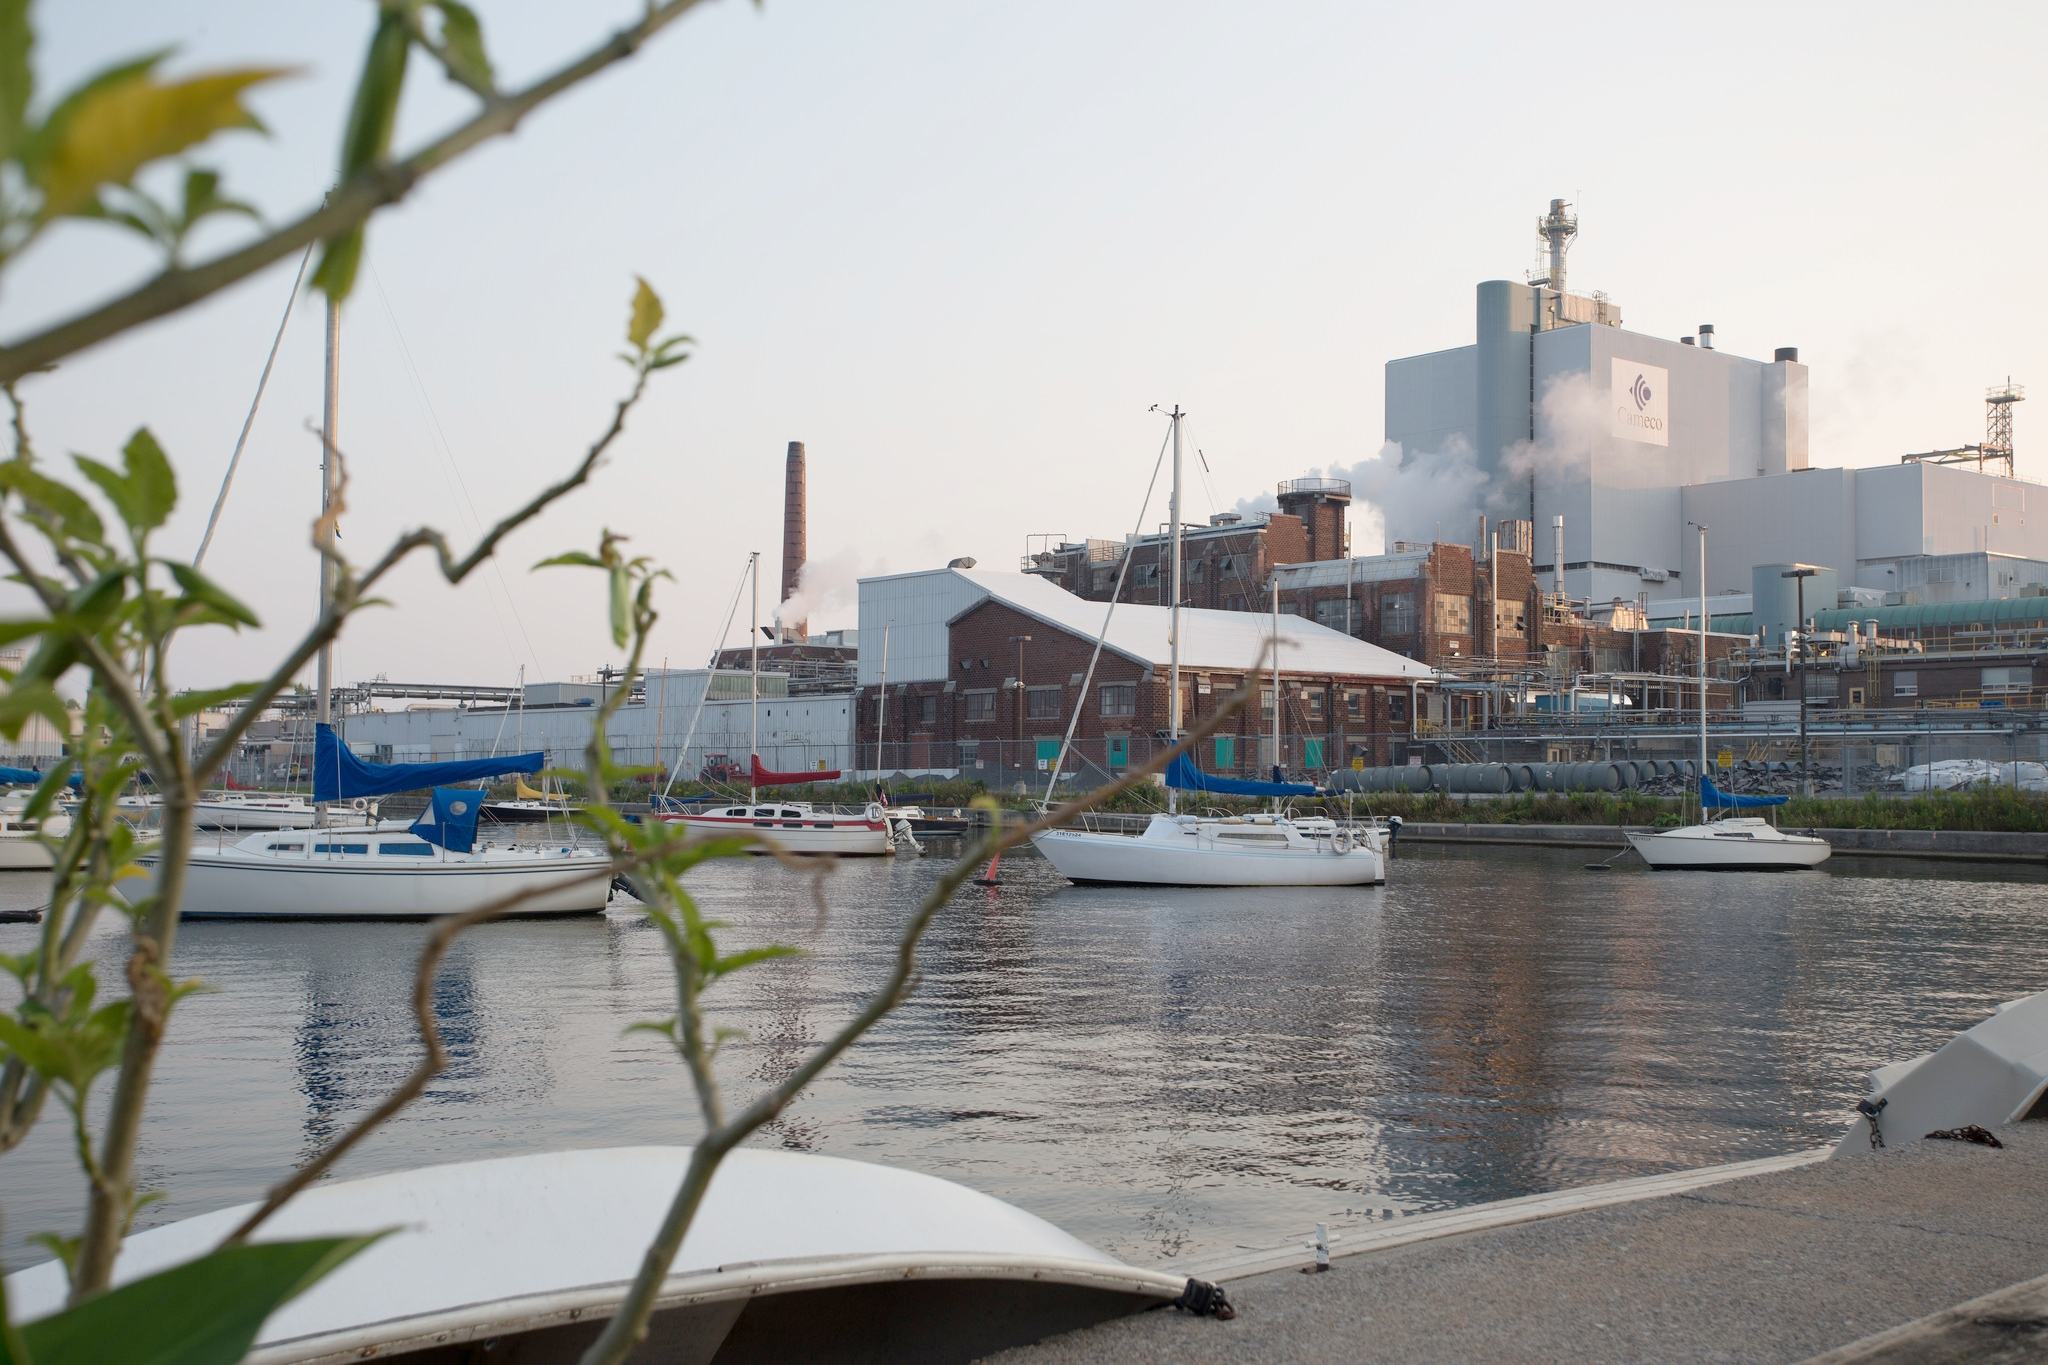 Cameco's conversion facility in Port Hope. (Photo by Dylan Neild)